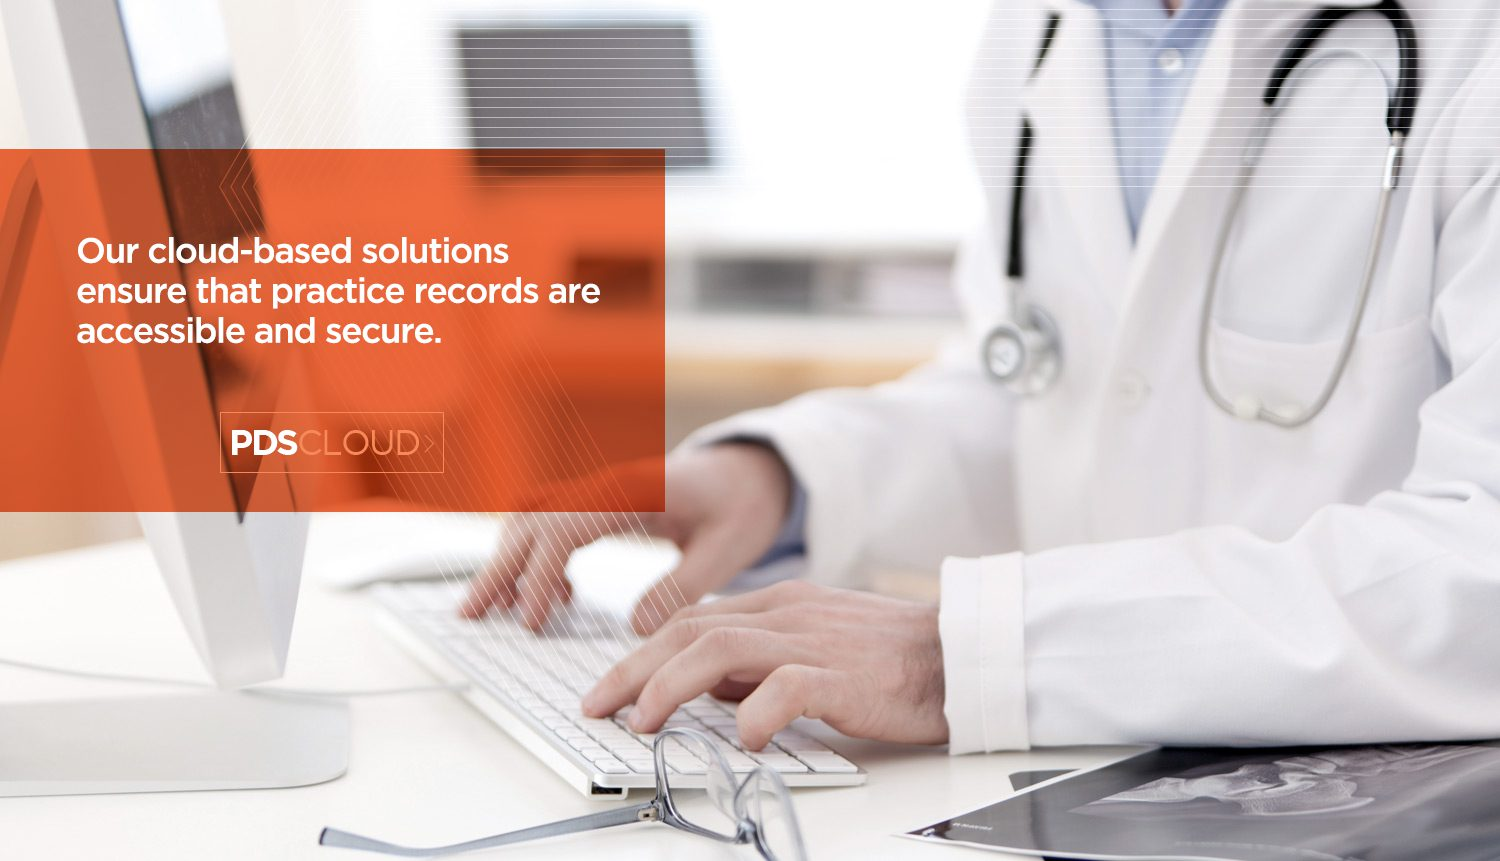 Our cloud-based solutions ensure that practice records are accessible and secure.